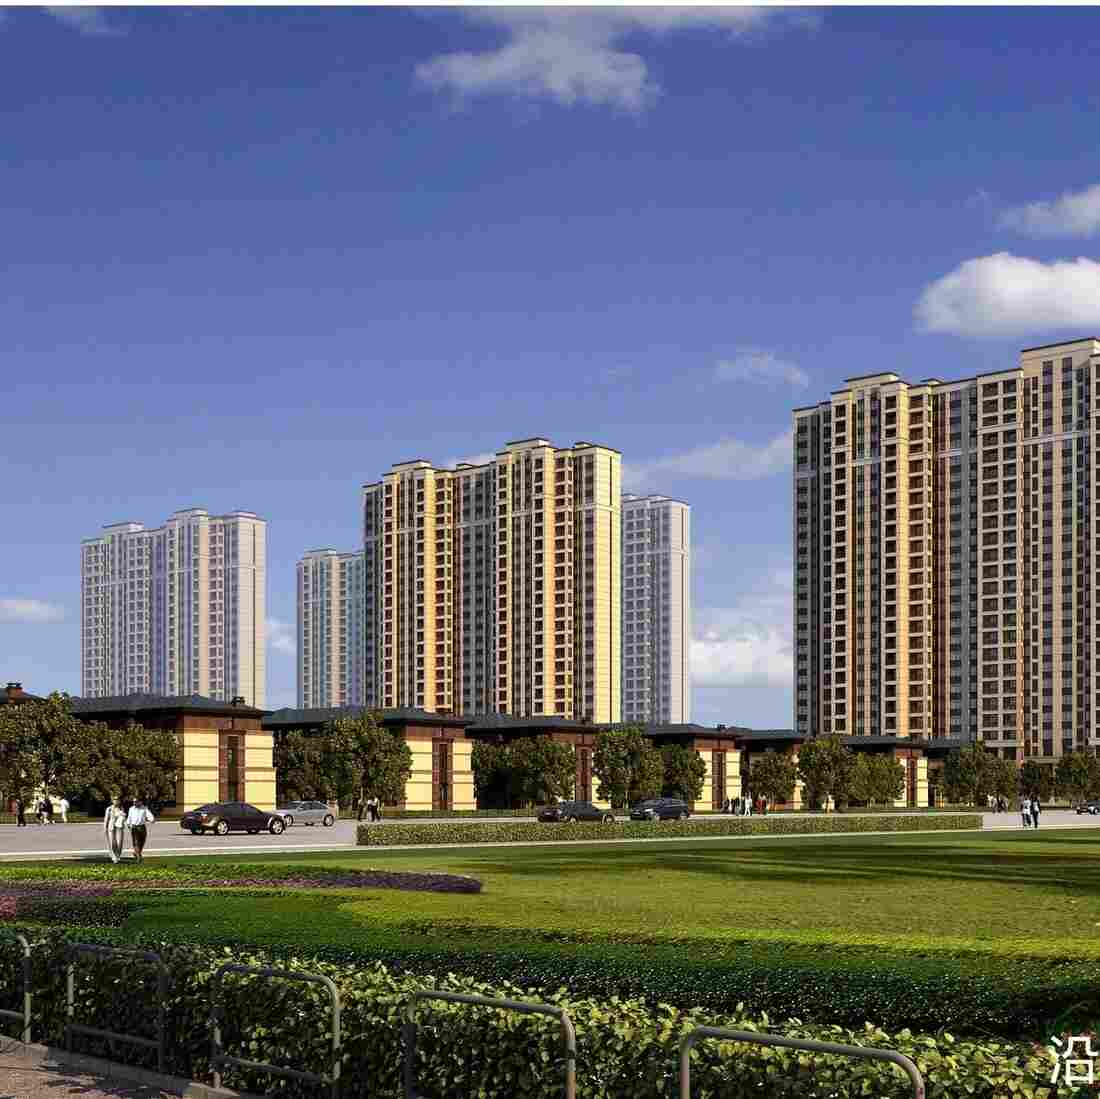 Apartments are still under construction in Wuxi, outside Shanghai, despite a glut in the market and almost no local demand. This development is to have 2,500 residential units.